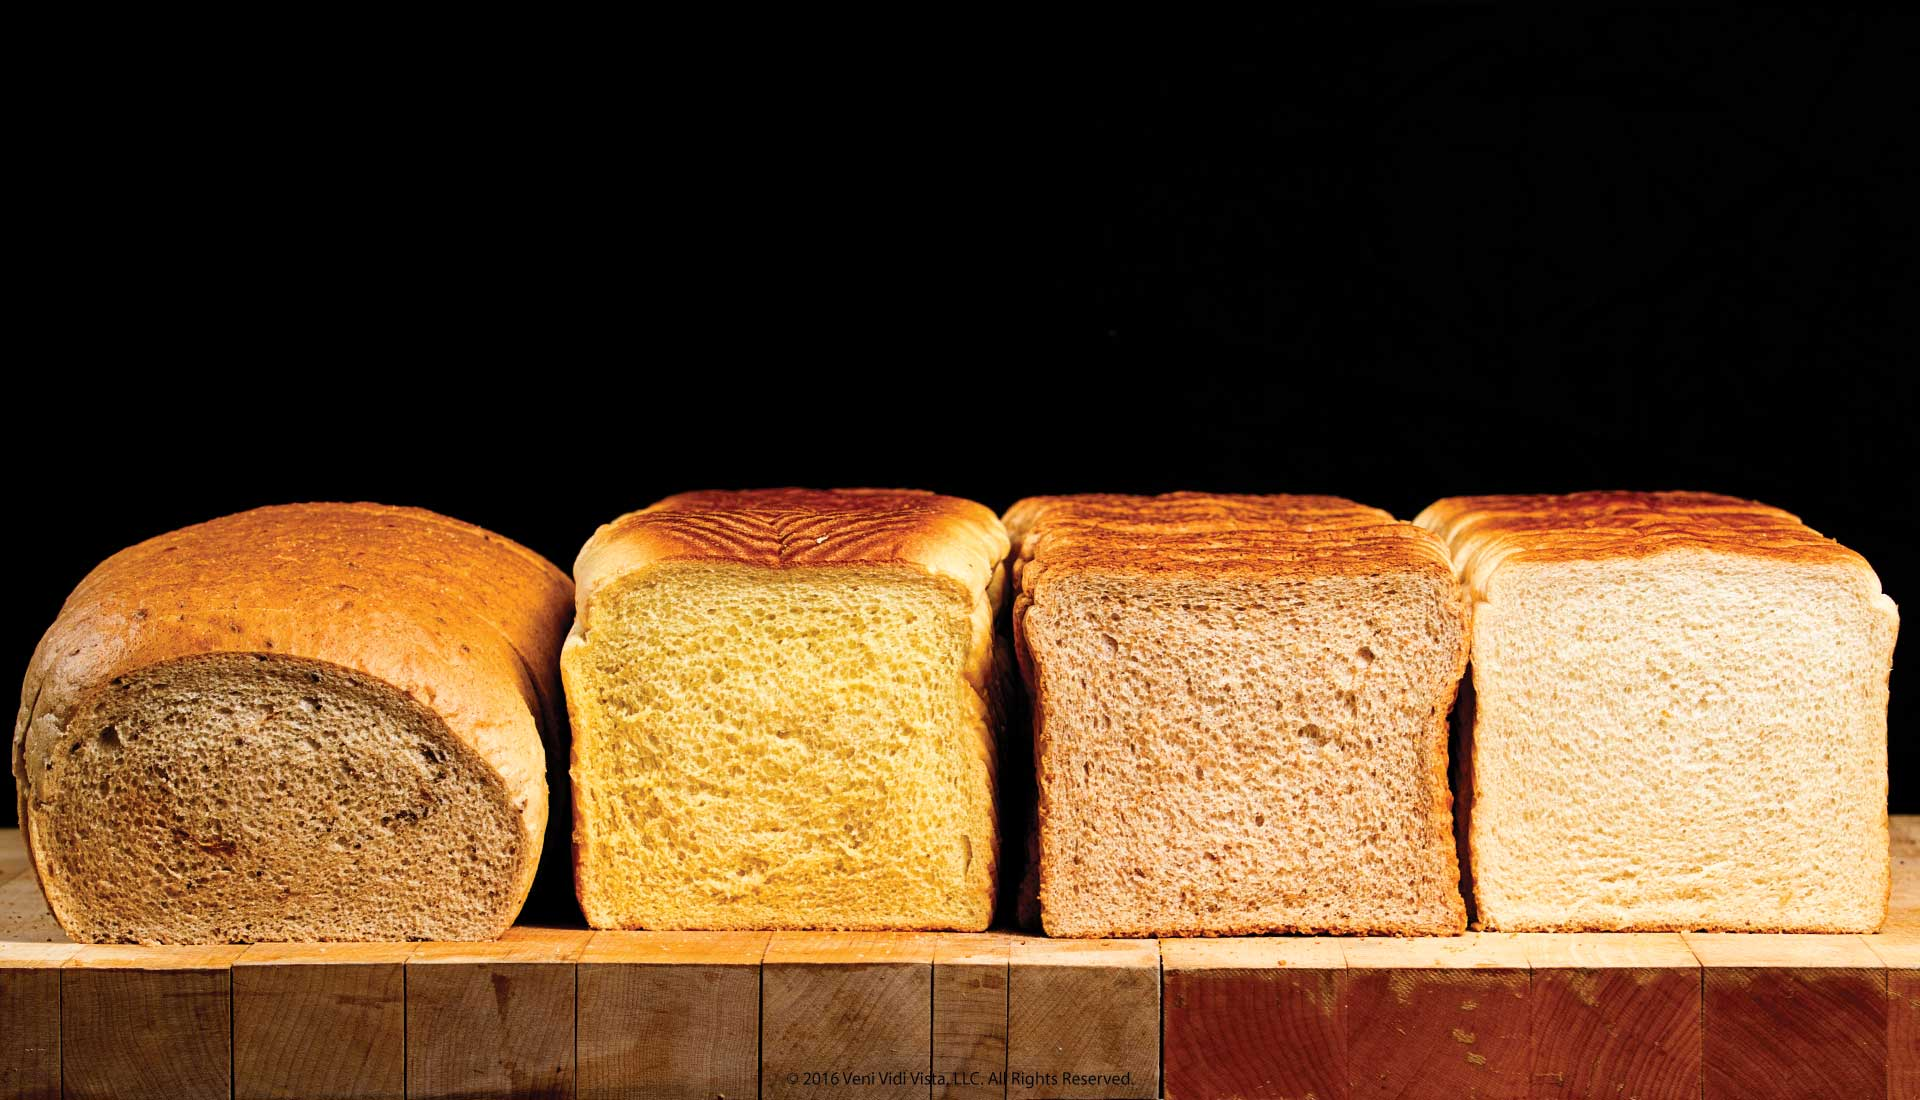 Food Bread Product Photography Restaurant Bread – 4 Loafs